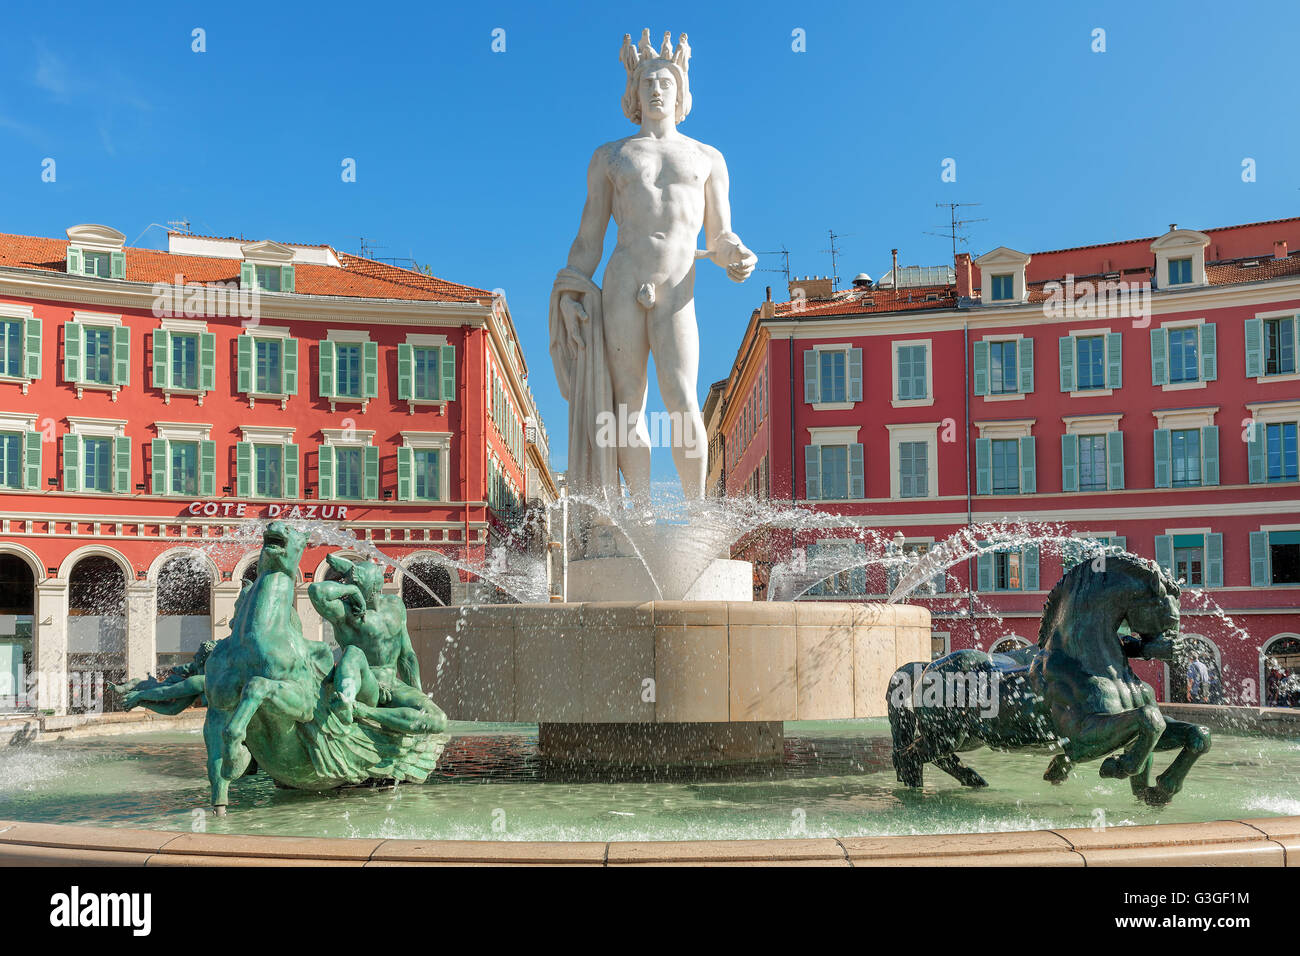 Fountain of the sun fontaine du soleil on place massena in nice stock photo royalty free - Place massena nice ...